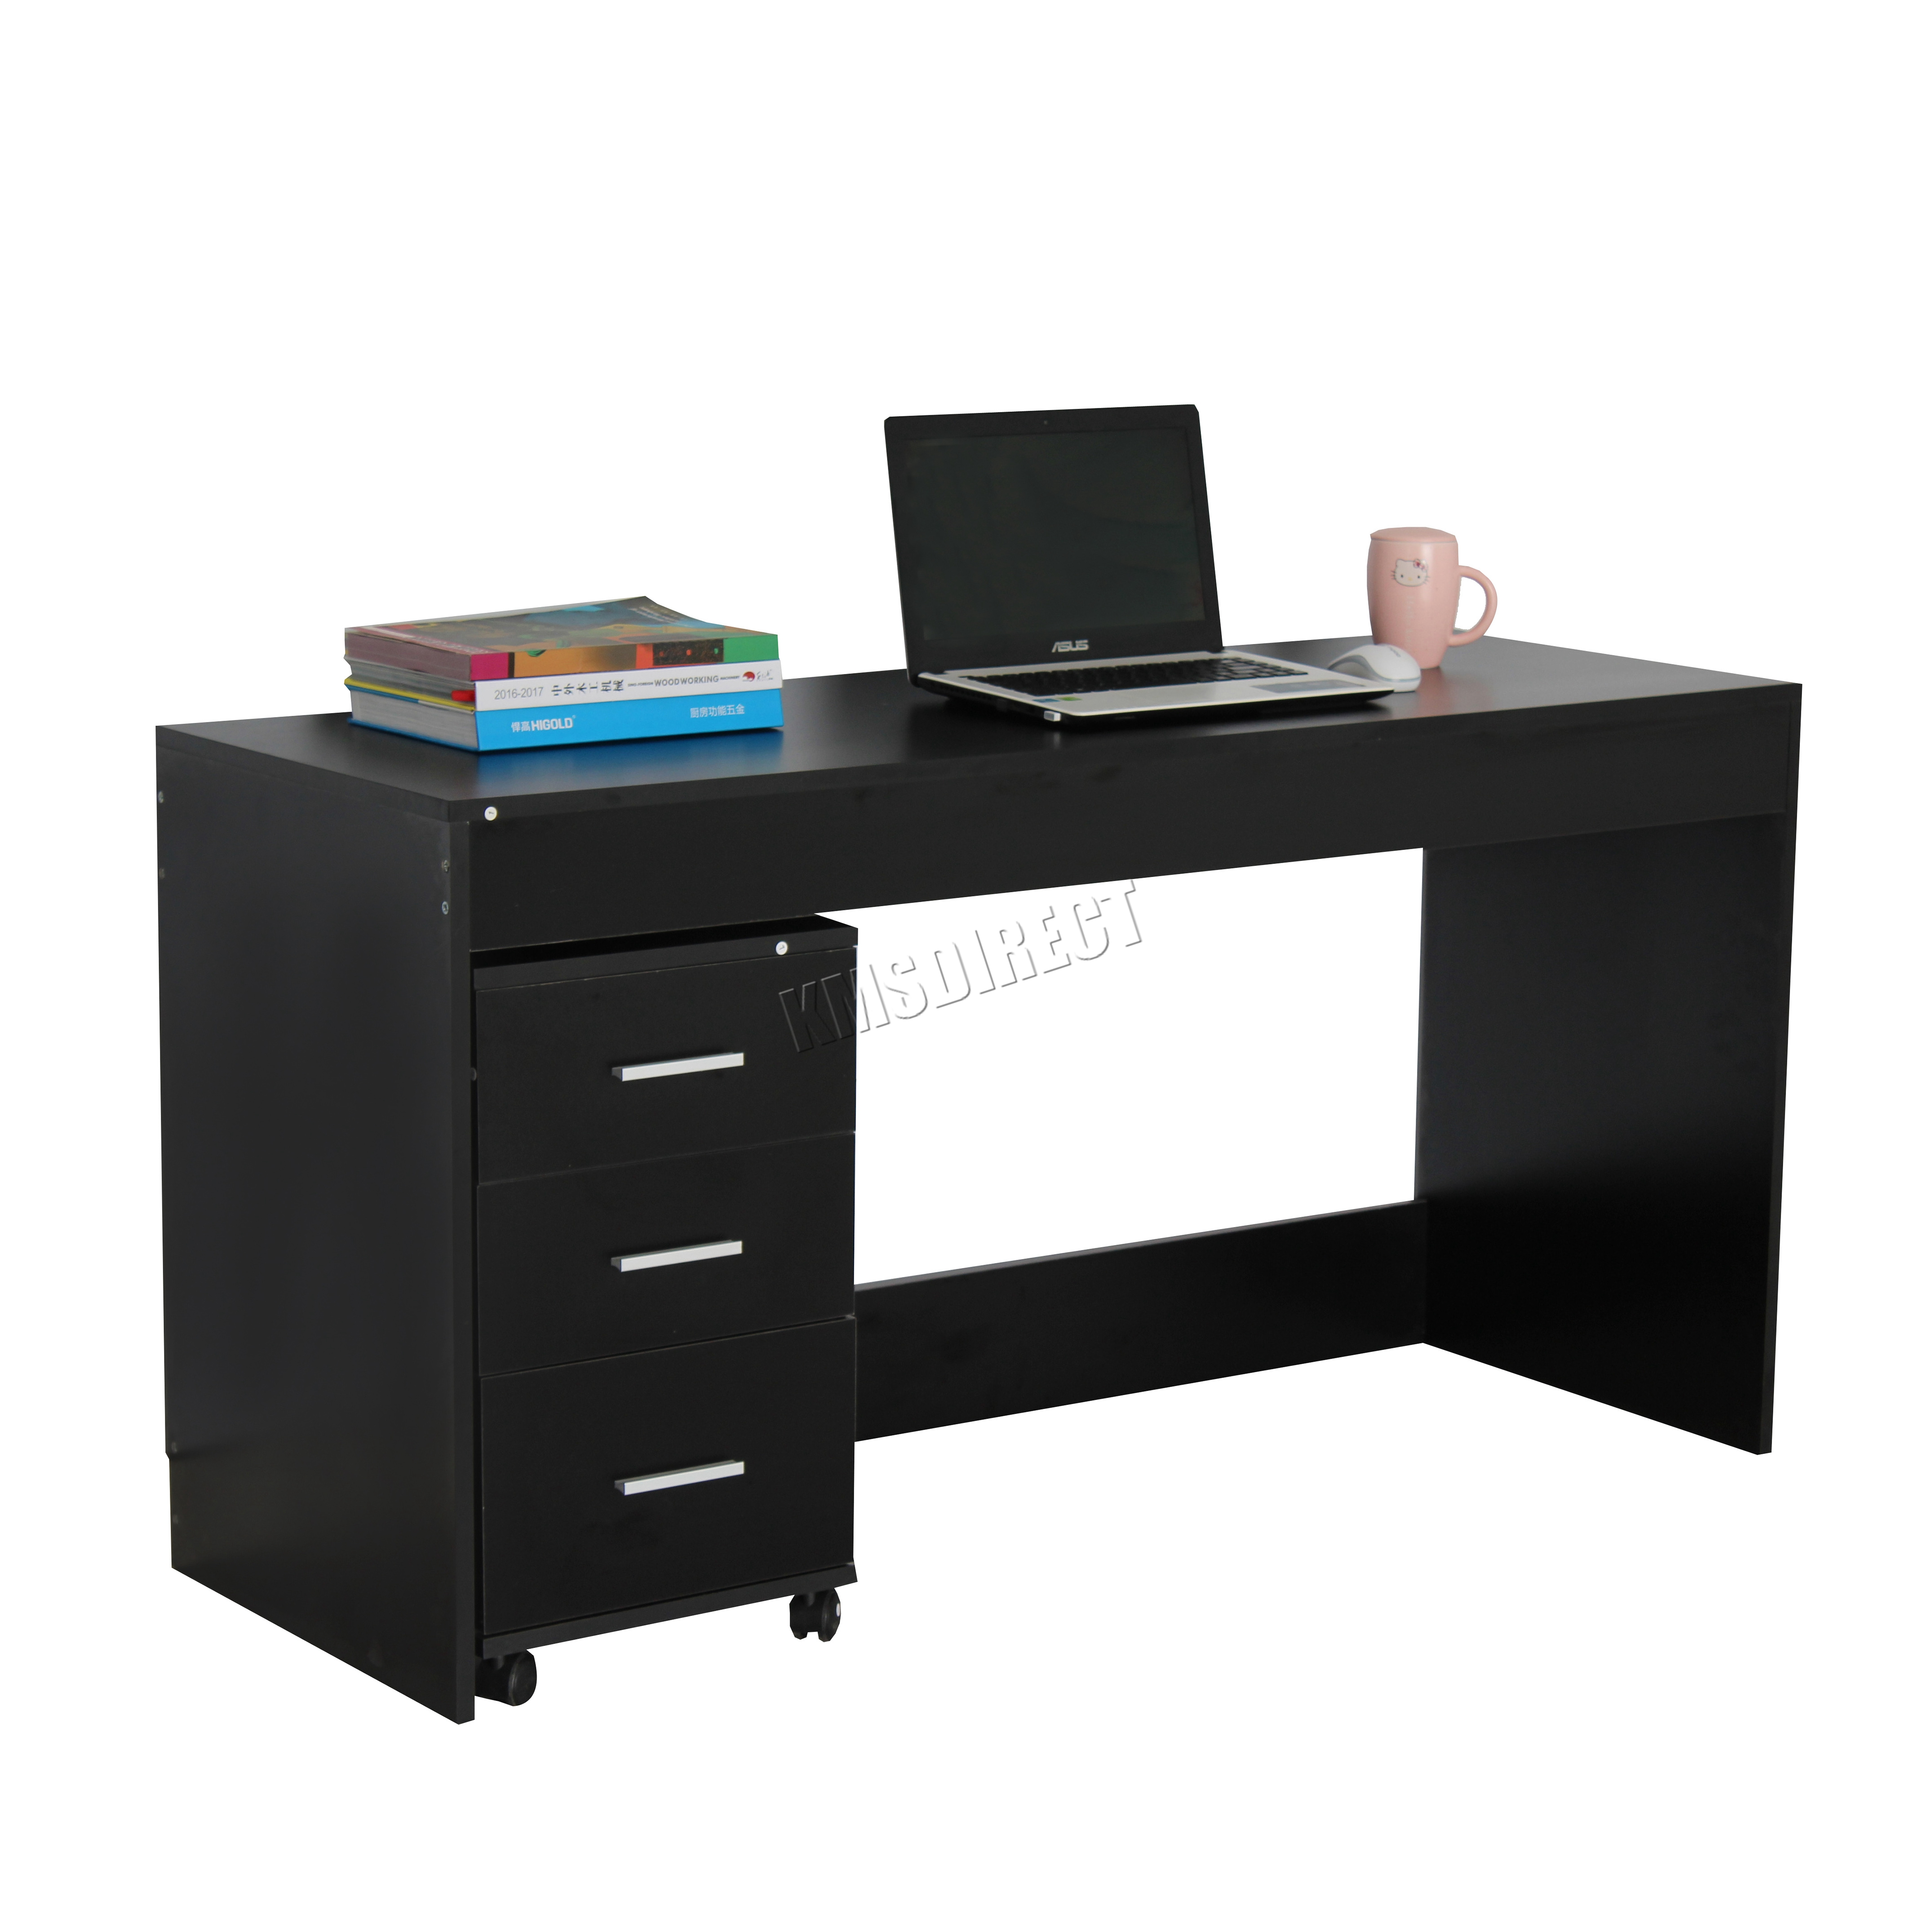 Westwood ordinateur desk pc table with 3 drawers